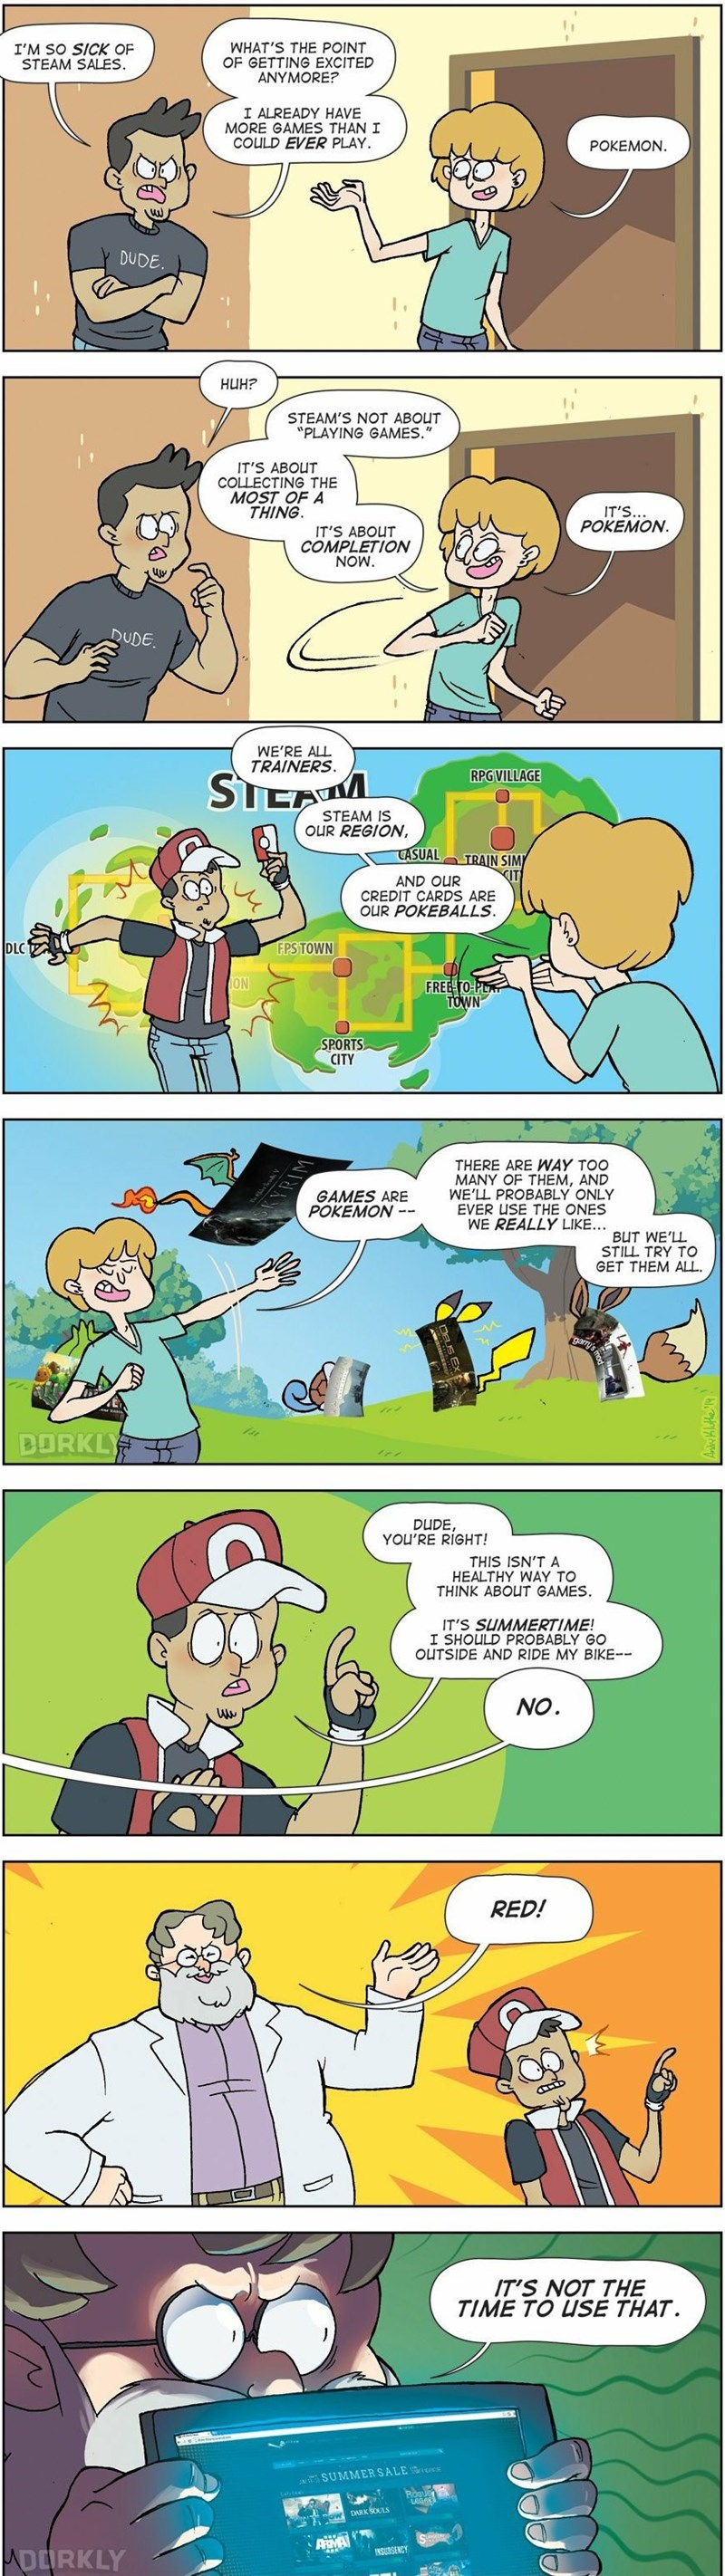 steam Pokémon web comics theory